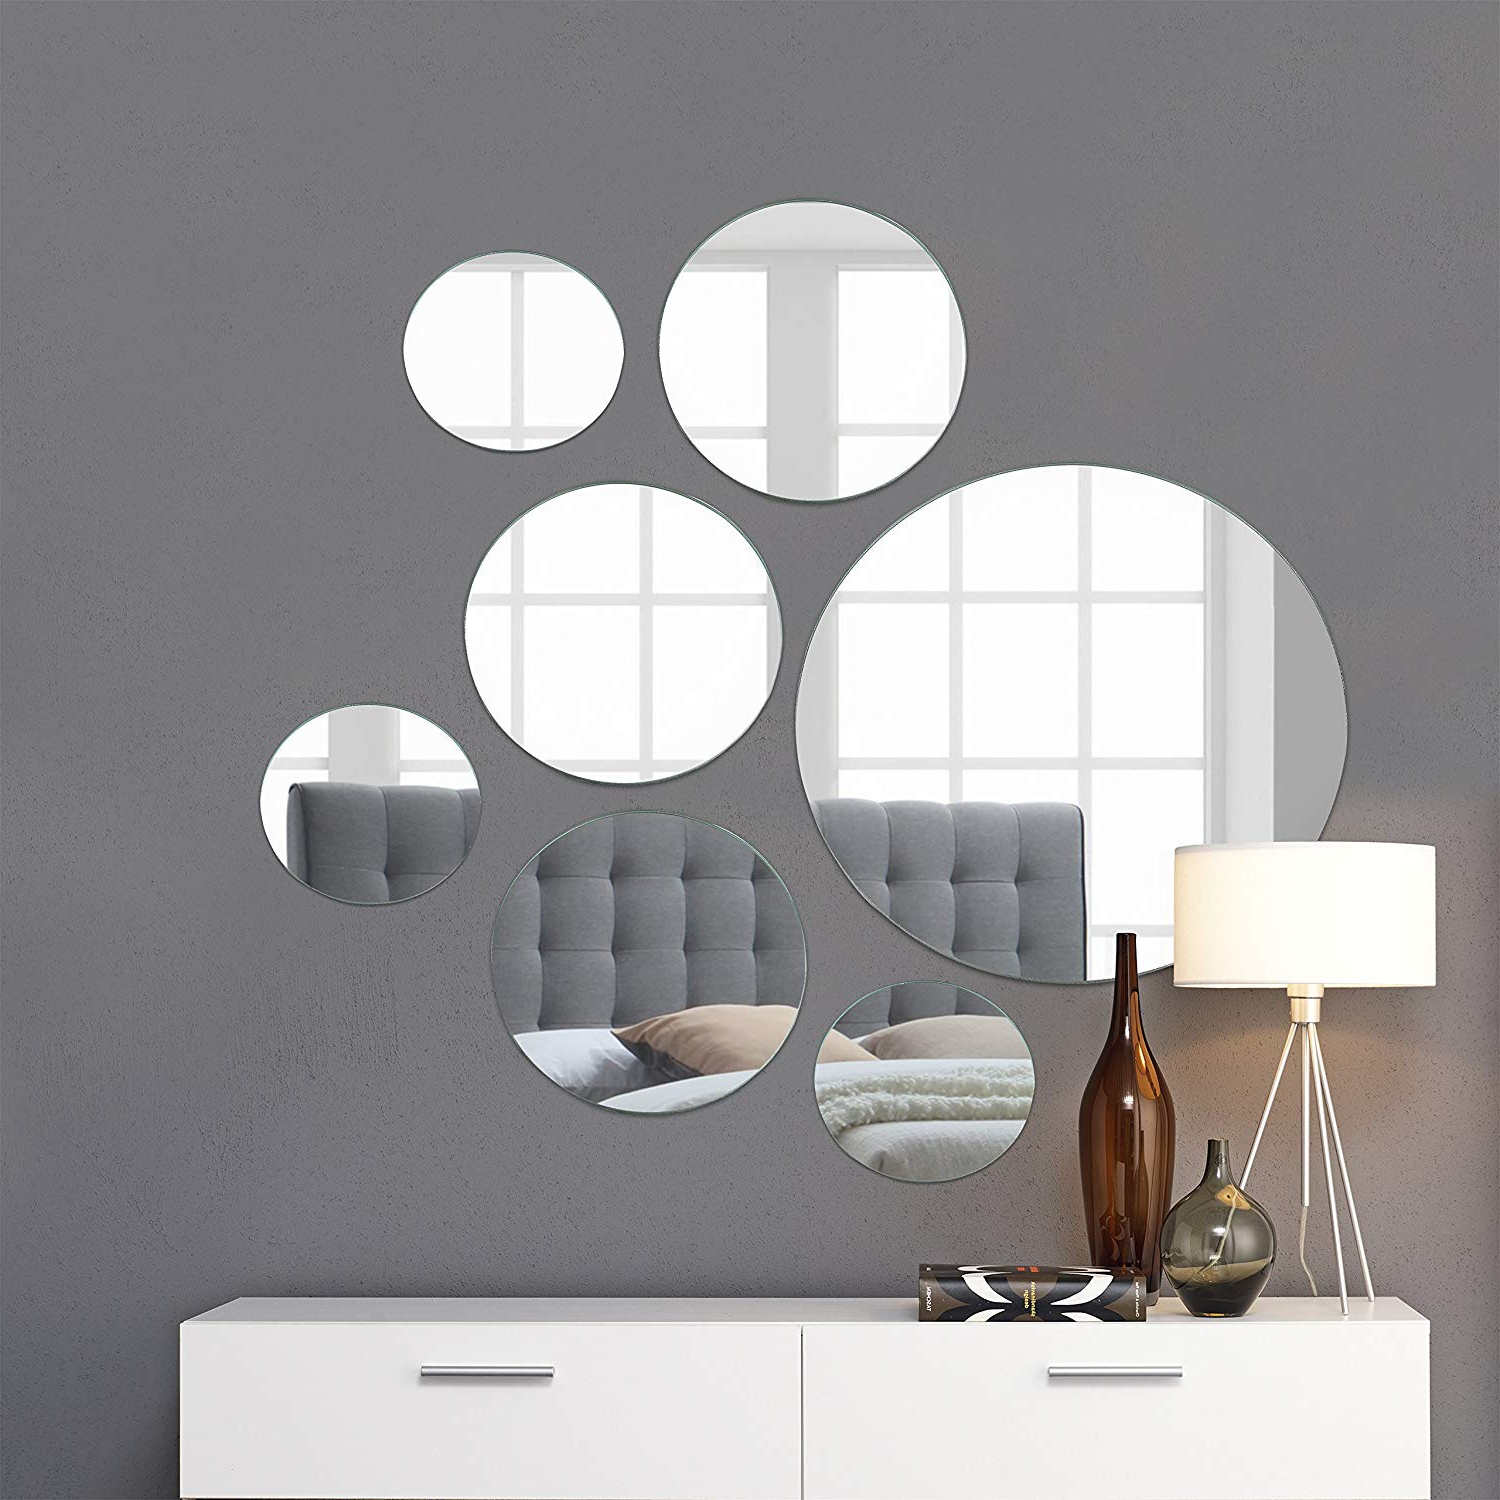 "Light In The Dark Medium Round Mirror Wall Mounted Assorted Sizes (1X10"", 3X7"", 3X4"") – Set Of 7 Round Glass Mirrors Wall Decoration For Living Room, Regarding Current Round Wall Mirror Sets (Gallery 2 of 20)"